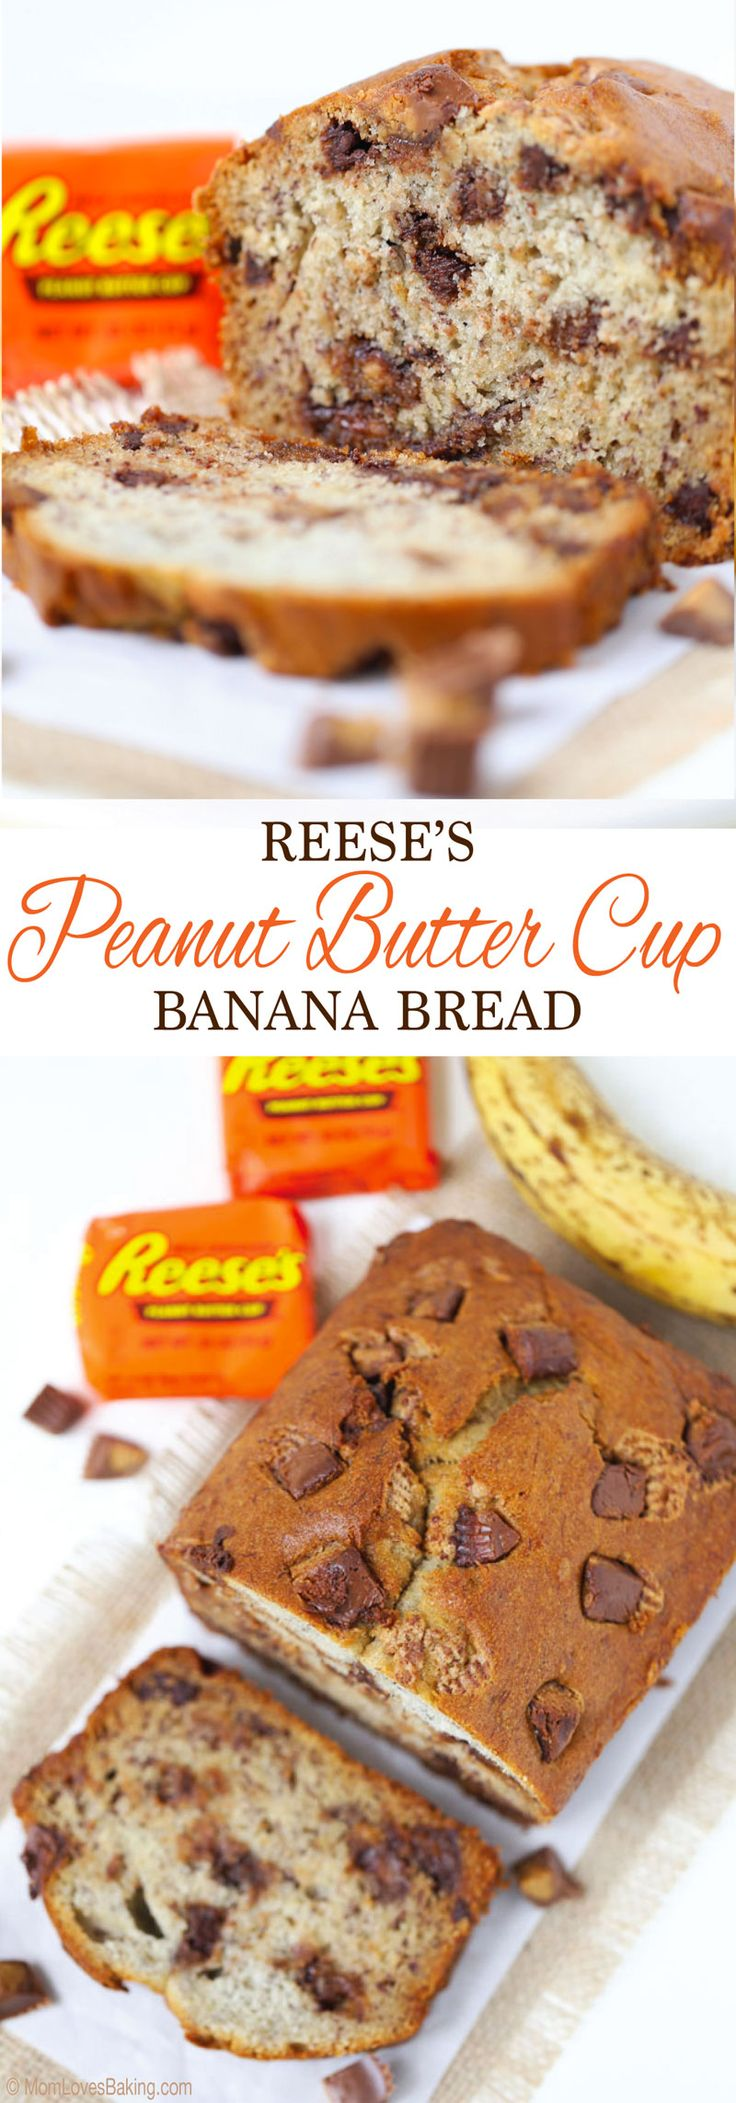 It's moist, delicious and filled with chopped Reese's Peanut Butter Cups and chocolate chips! You'd NEVER know it's gluten free too! Get recipe on http://MomLovesBaking.com